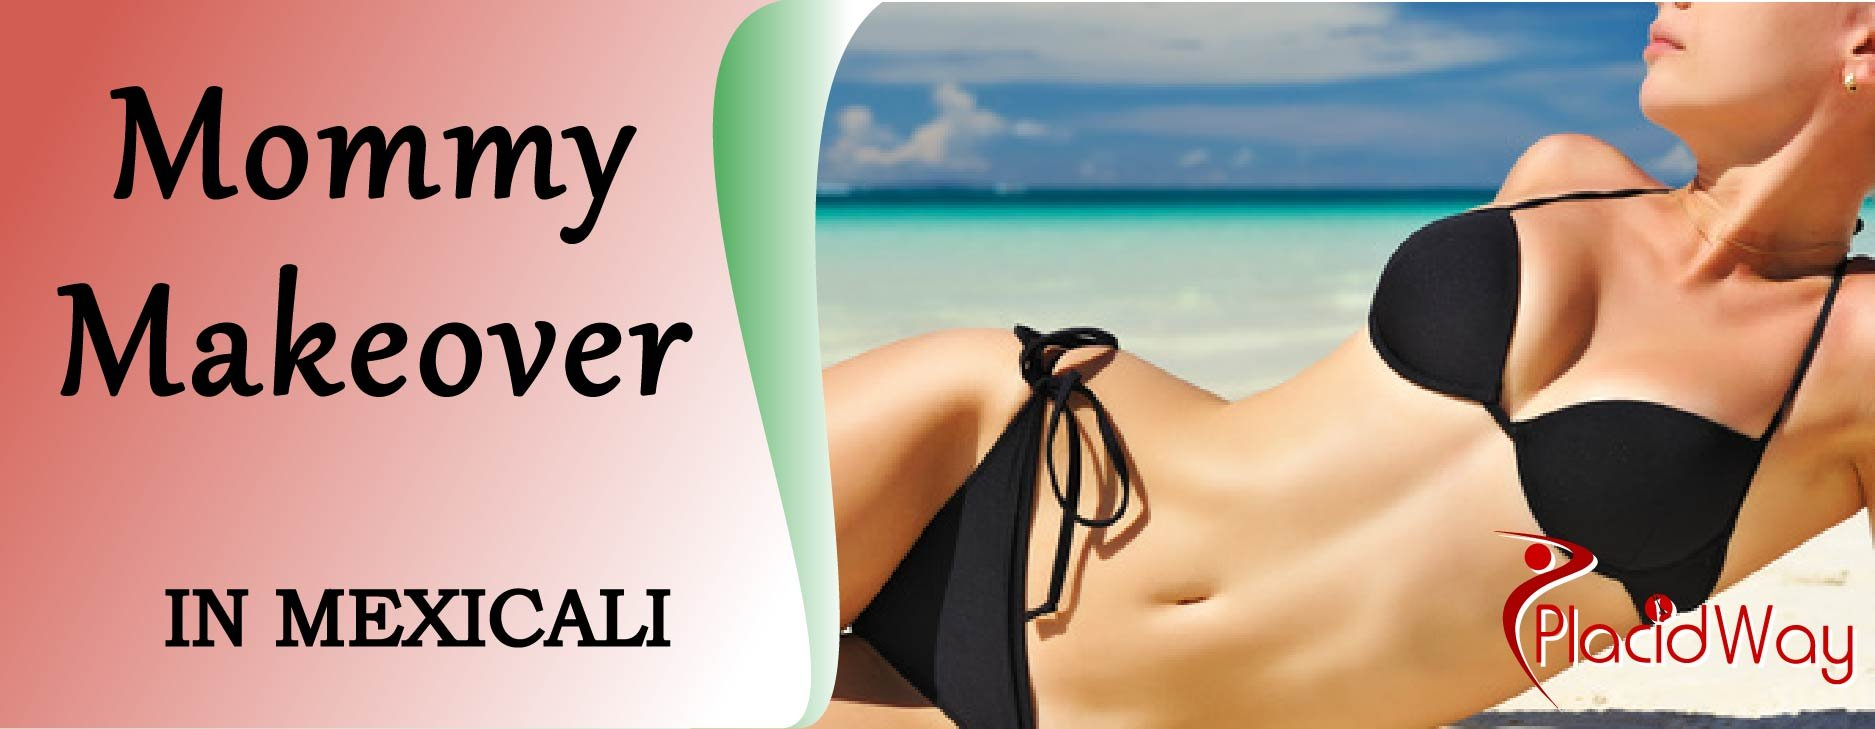 Best Mommy Makeover Clinic, Cosmetic Surgery Treatments in Mexico